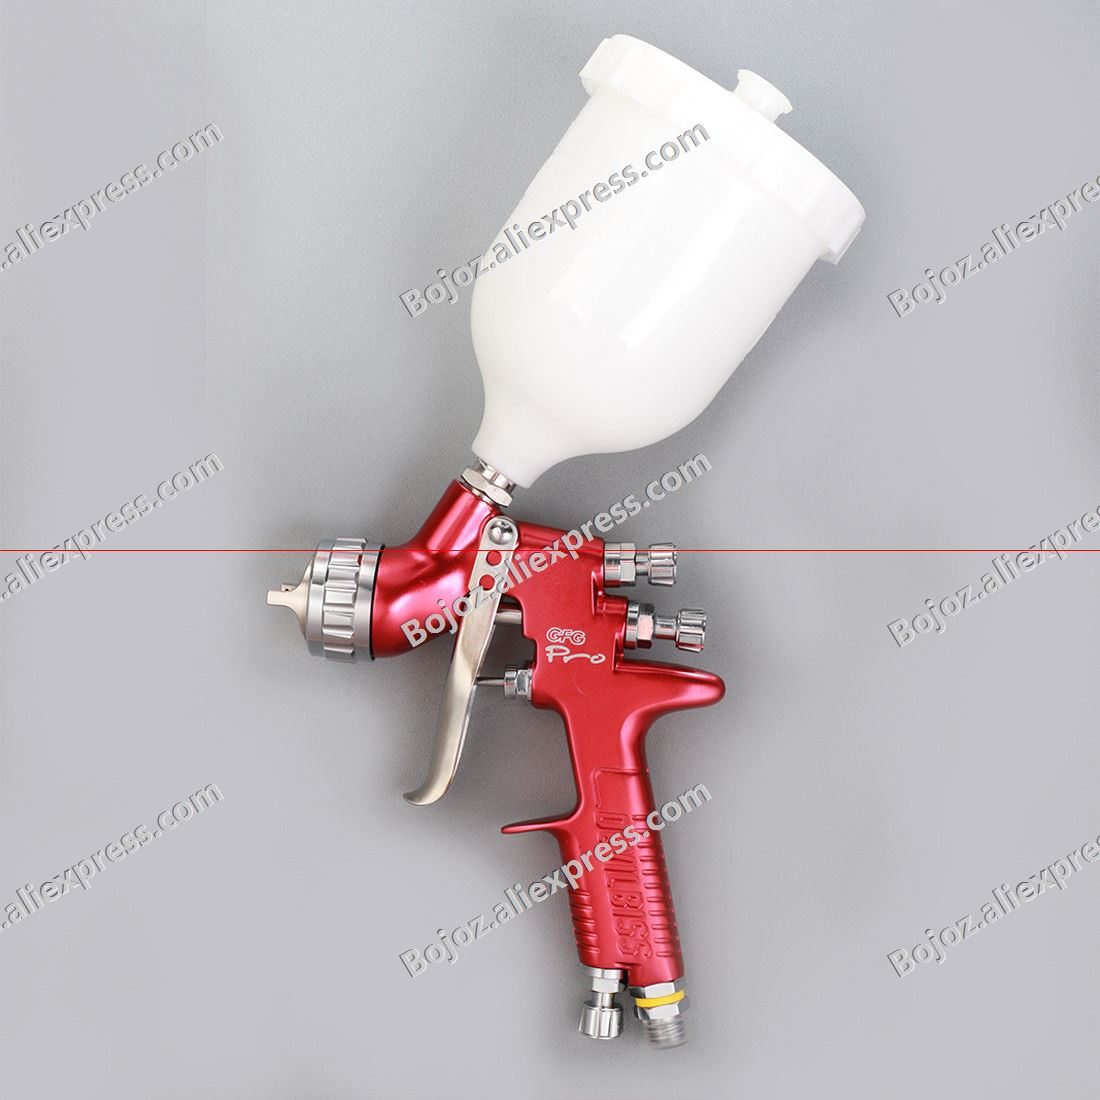 Professional GFG Air paint spray gun for car body HVLP 1.3mm painted high efficiency/ spray gun GTI sprayer paint tools